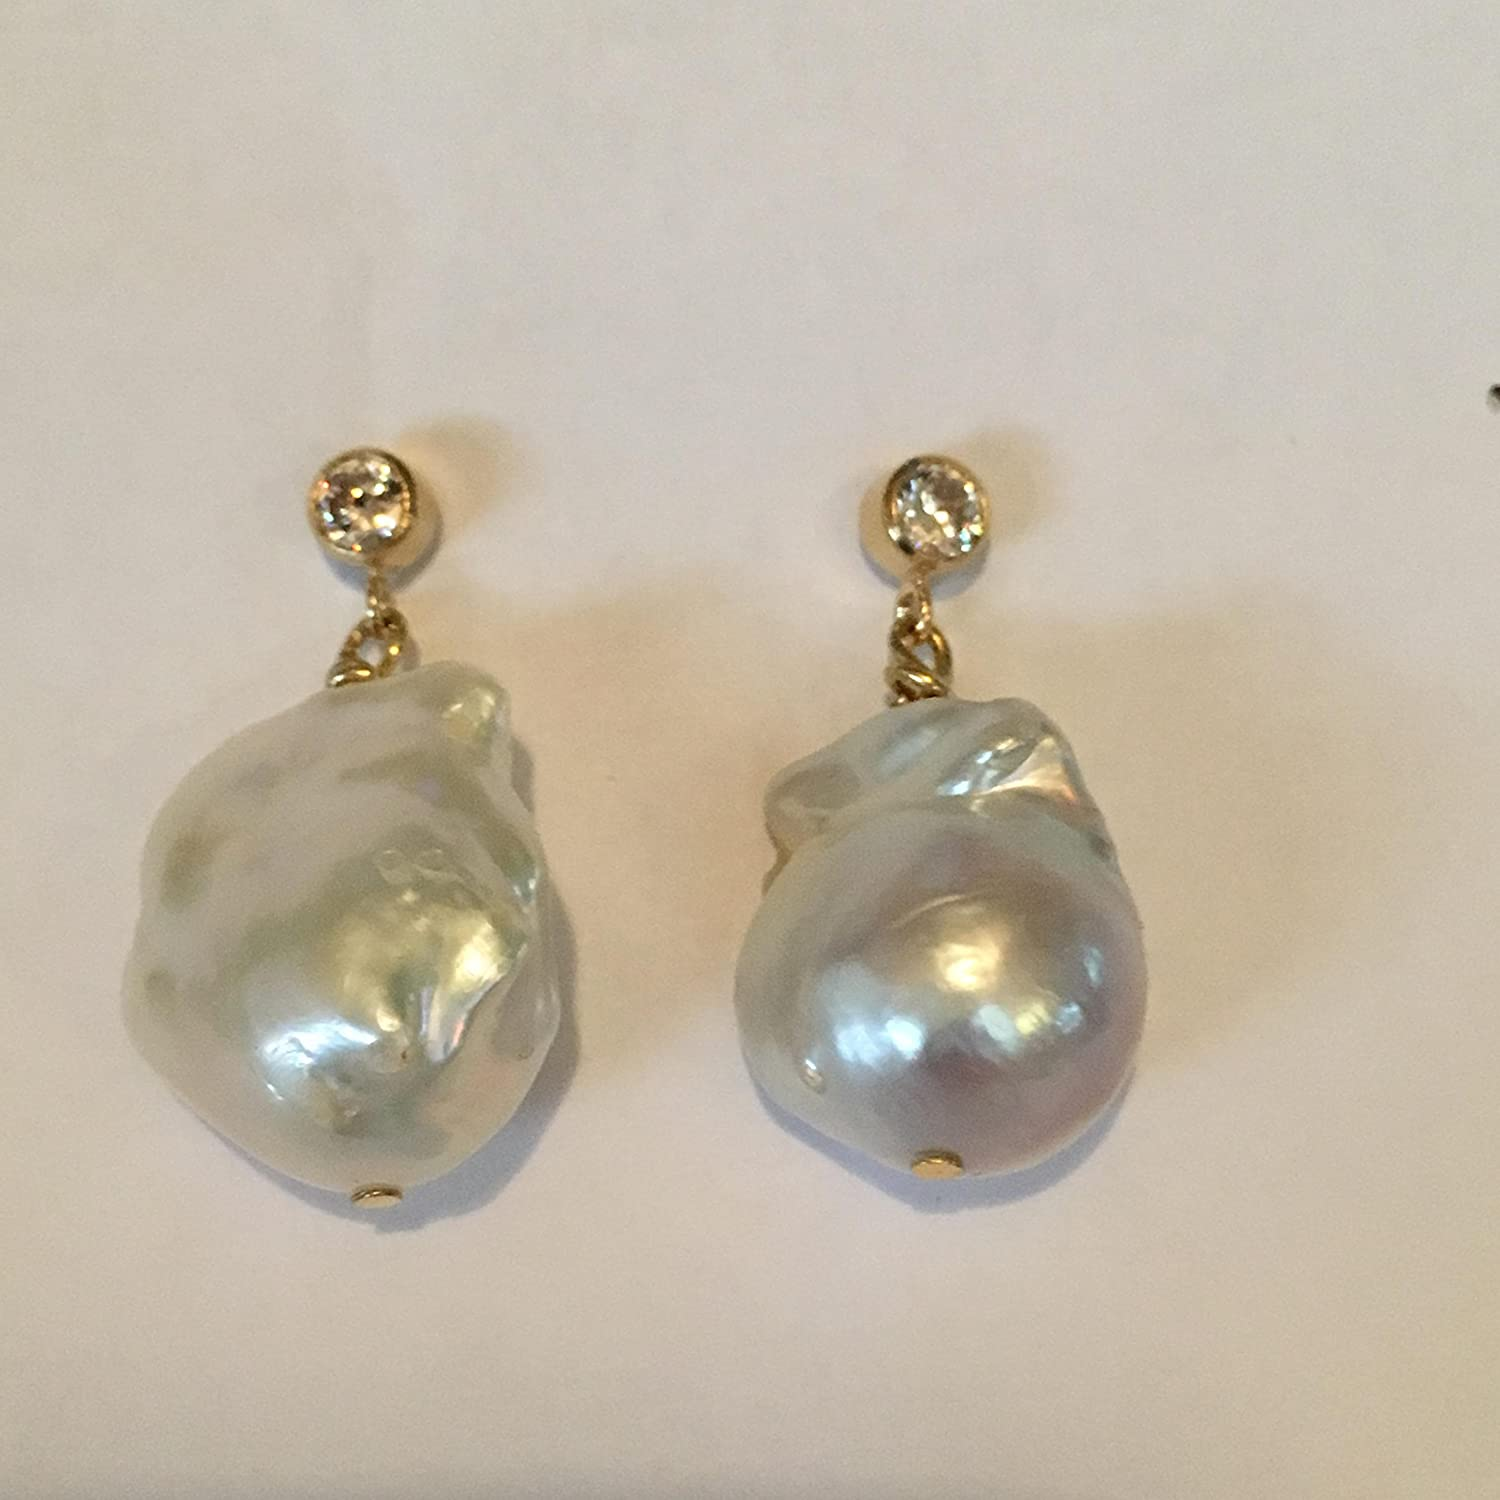 cbc15ce0c Tahitian cultured freshwater baroque high luster 22mm flame ball stud  dangle drop white pearl earrings hung gold plated earring posts with CZ's.